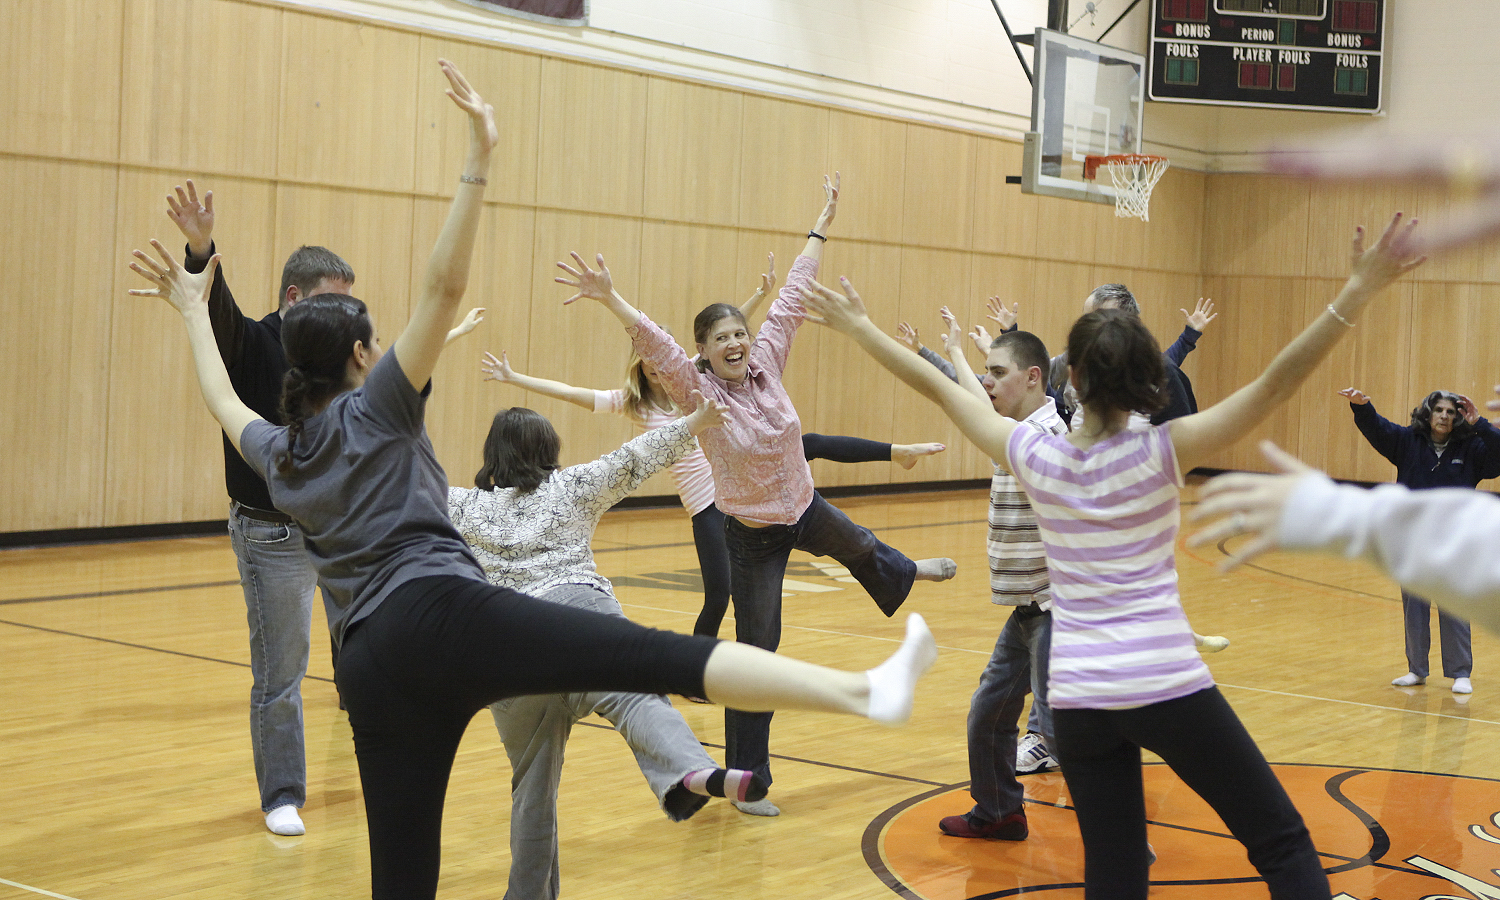 Disability-in-the-Arts-Dance-Workshop-2011-10-0533_140